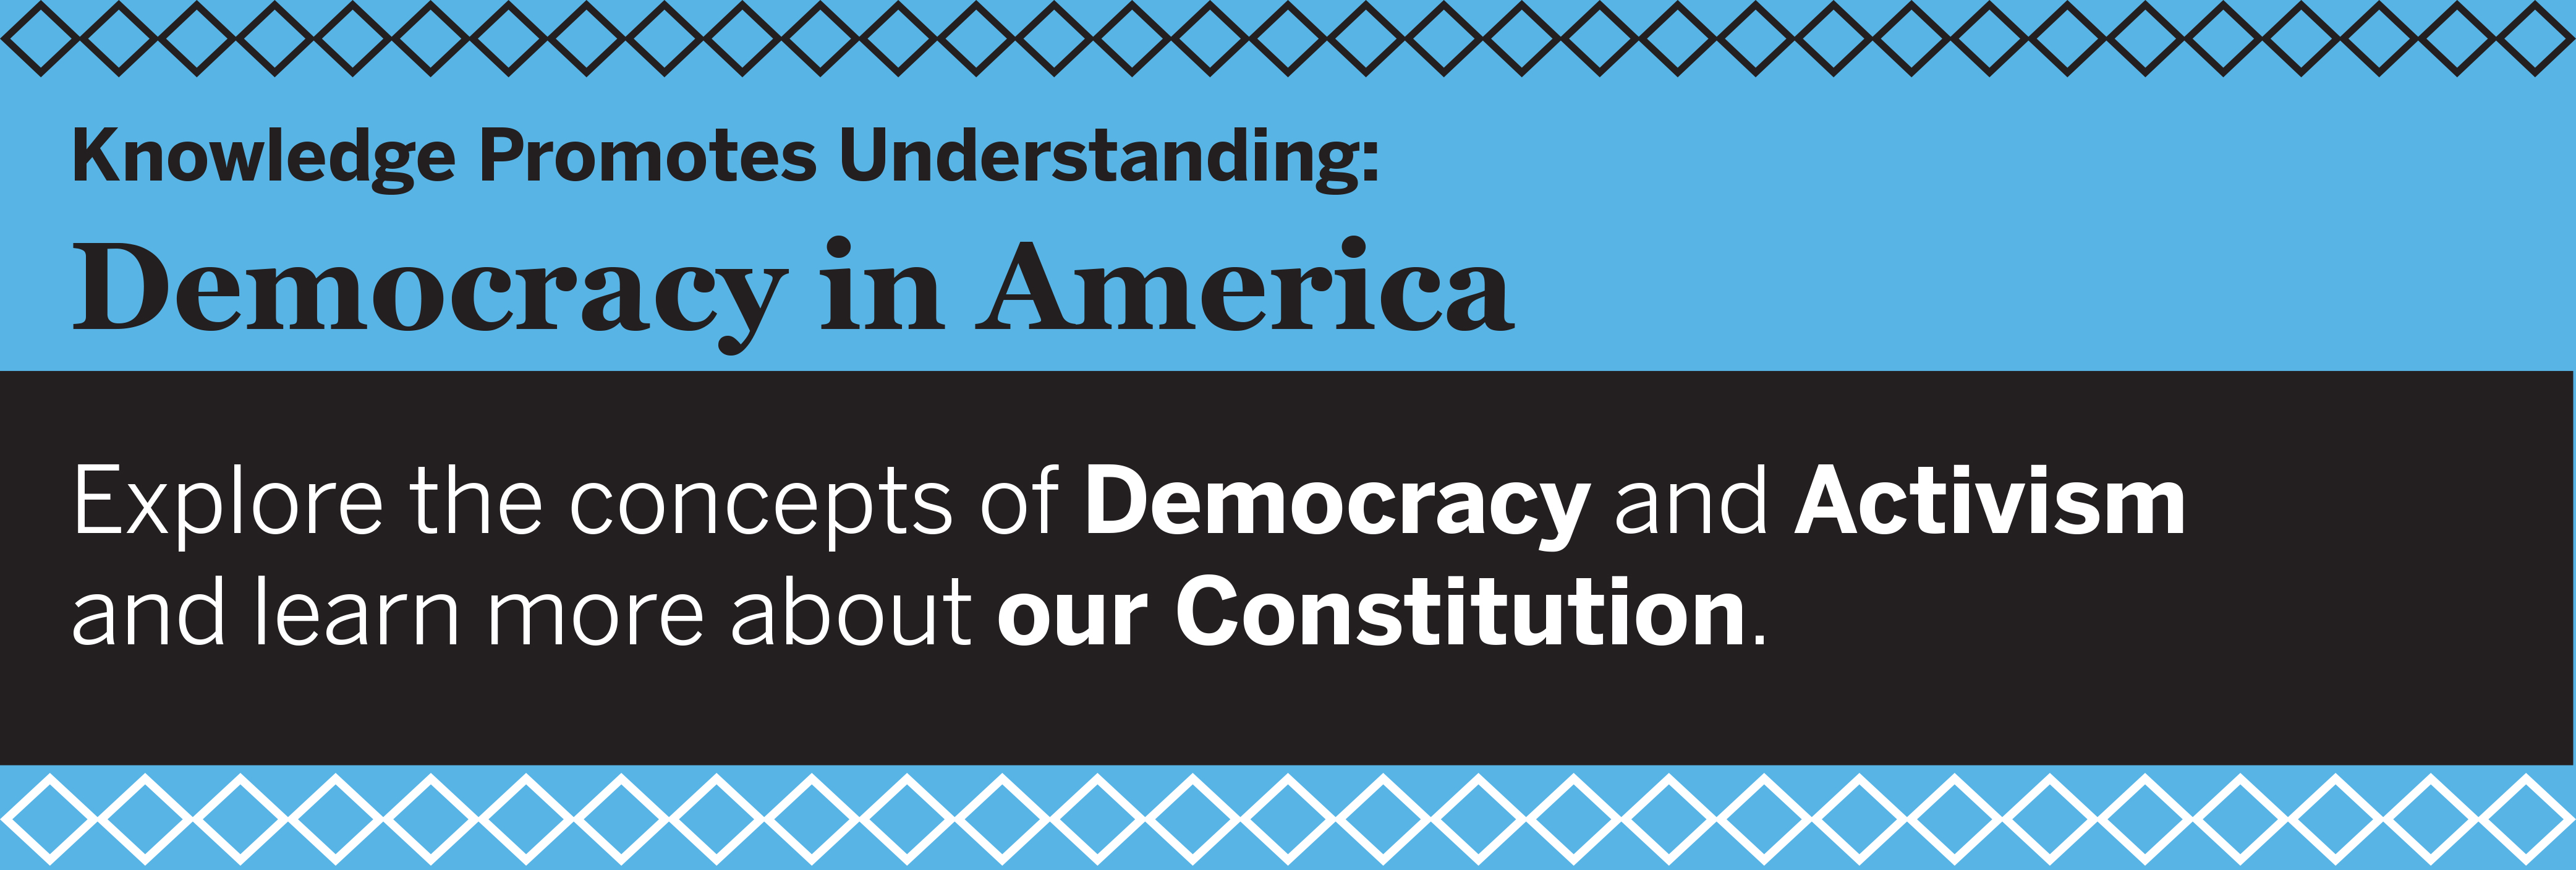 Knowledge Promotes Understanding: Democracy in America